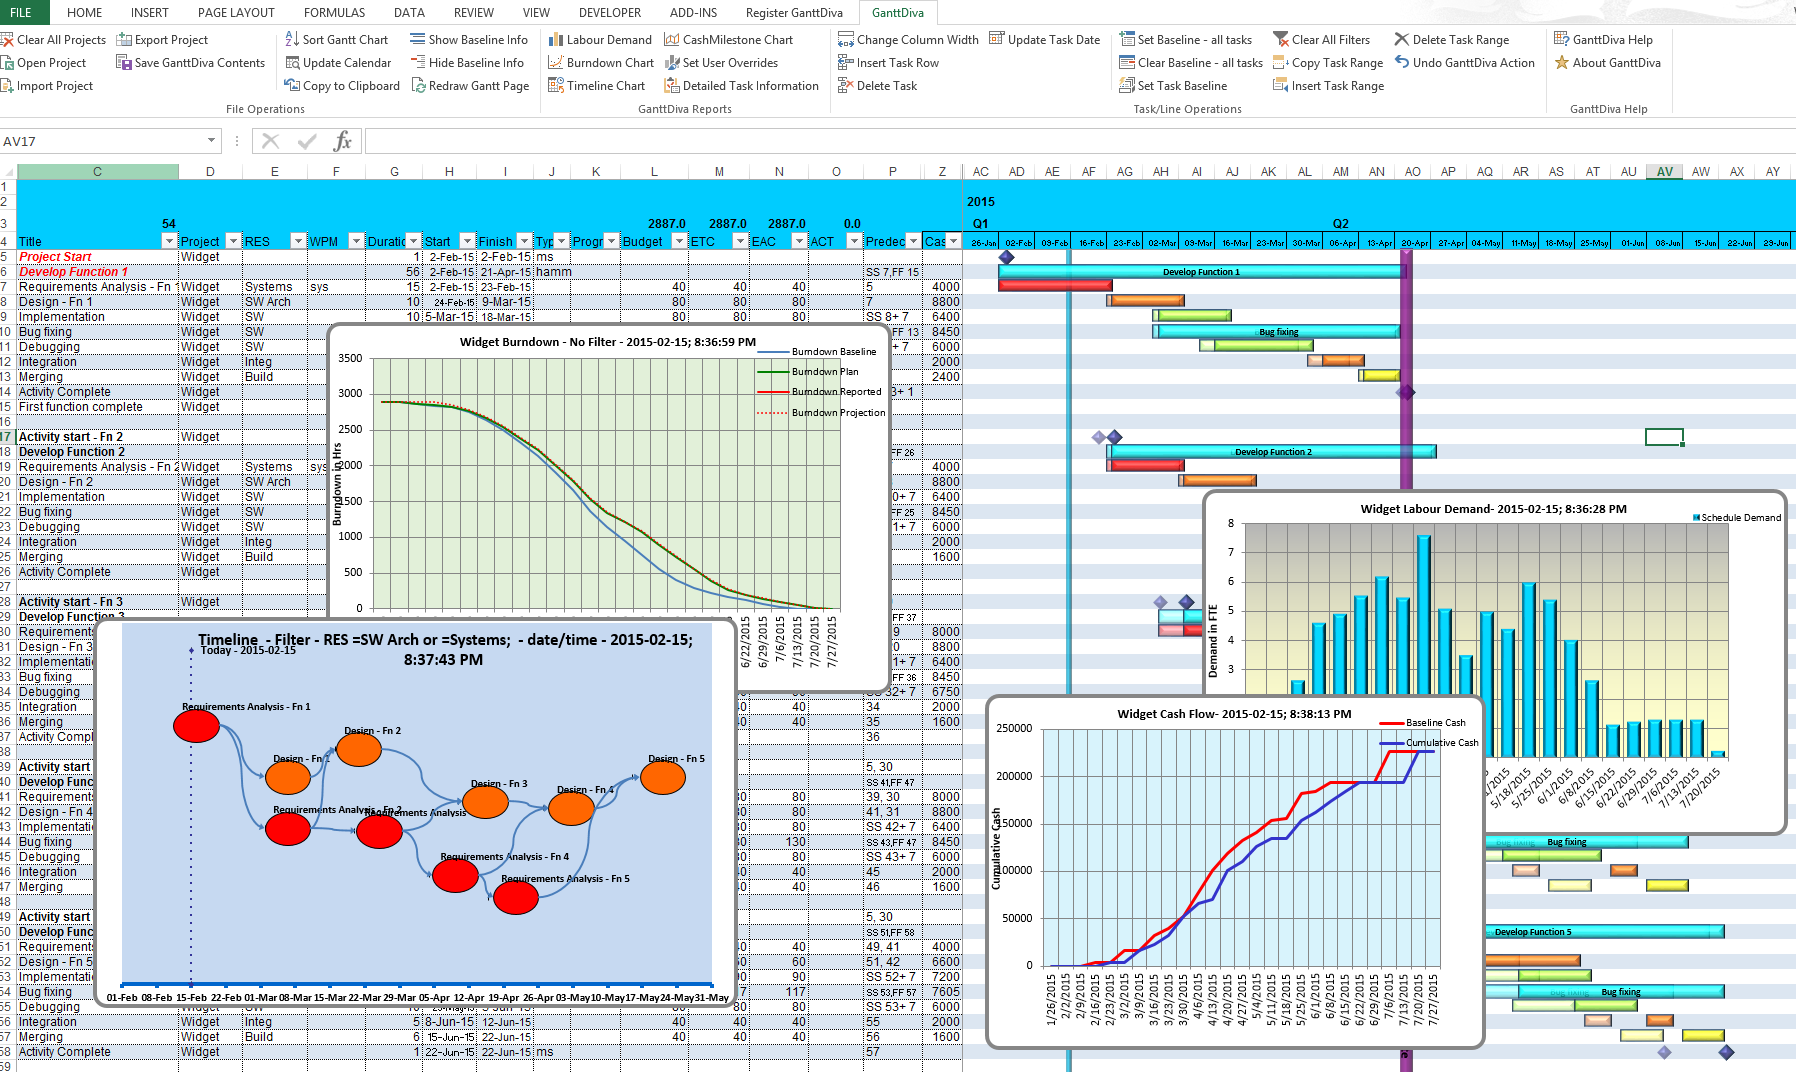 Free Excel Gantt Charting And Project Planning Ganttdiva Is A Free And Easy Excel Based Gantt Chart And Project Management Tool With Full Support For Schedule Logic Timelines Burndown Charts Resource